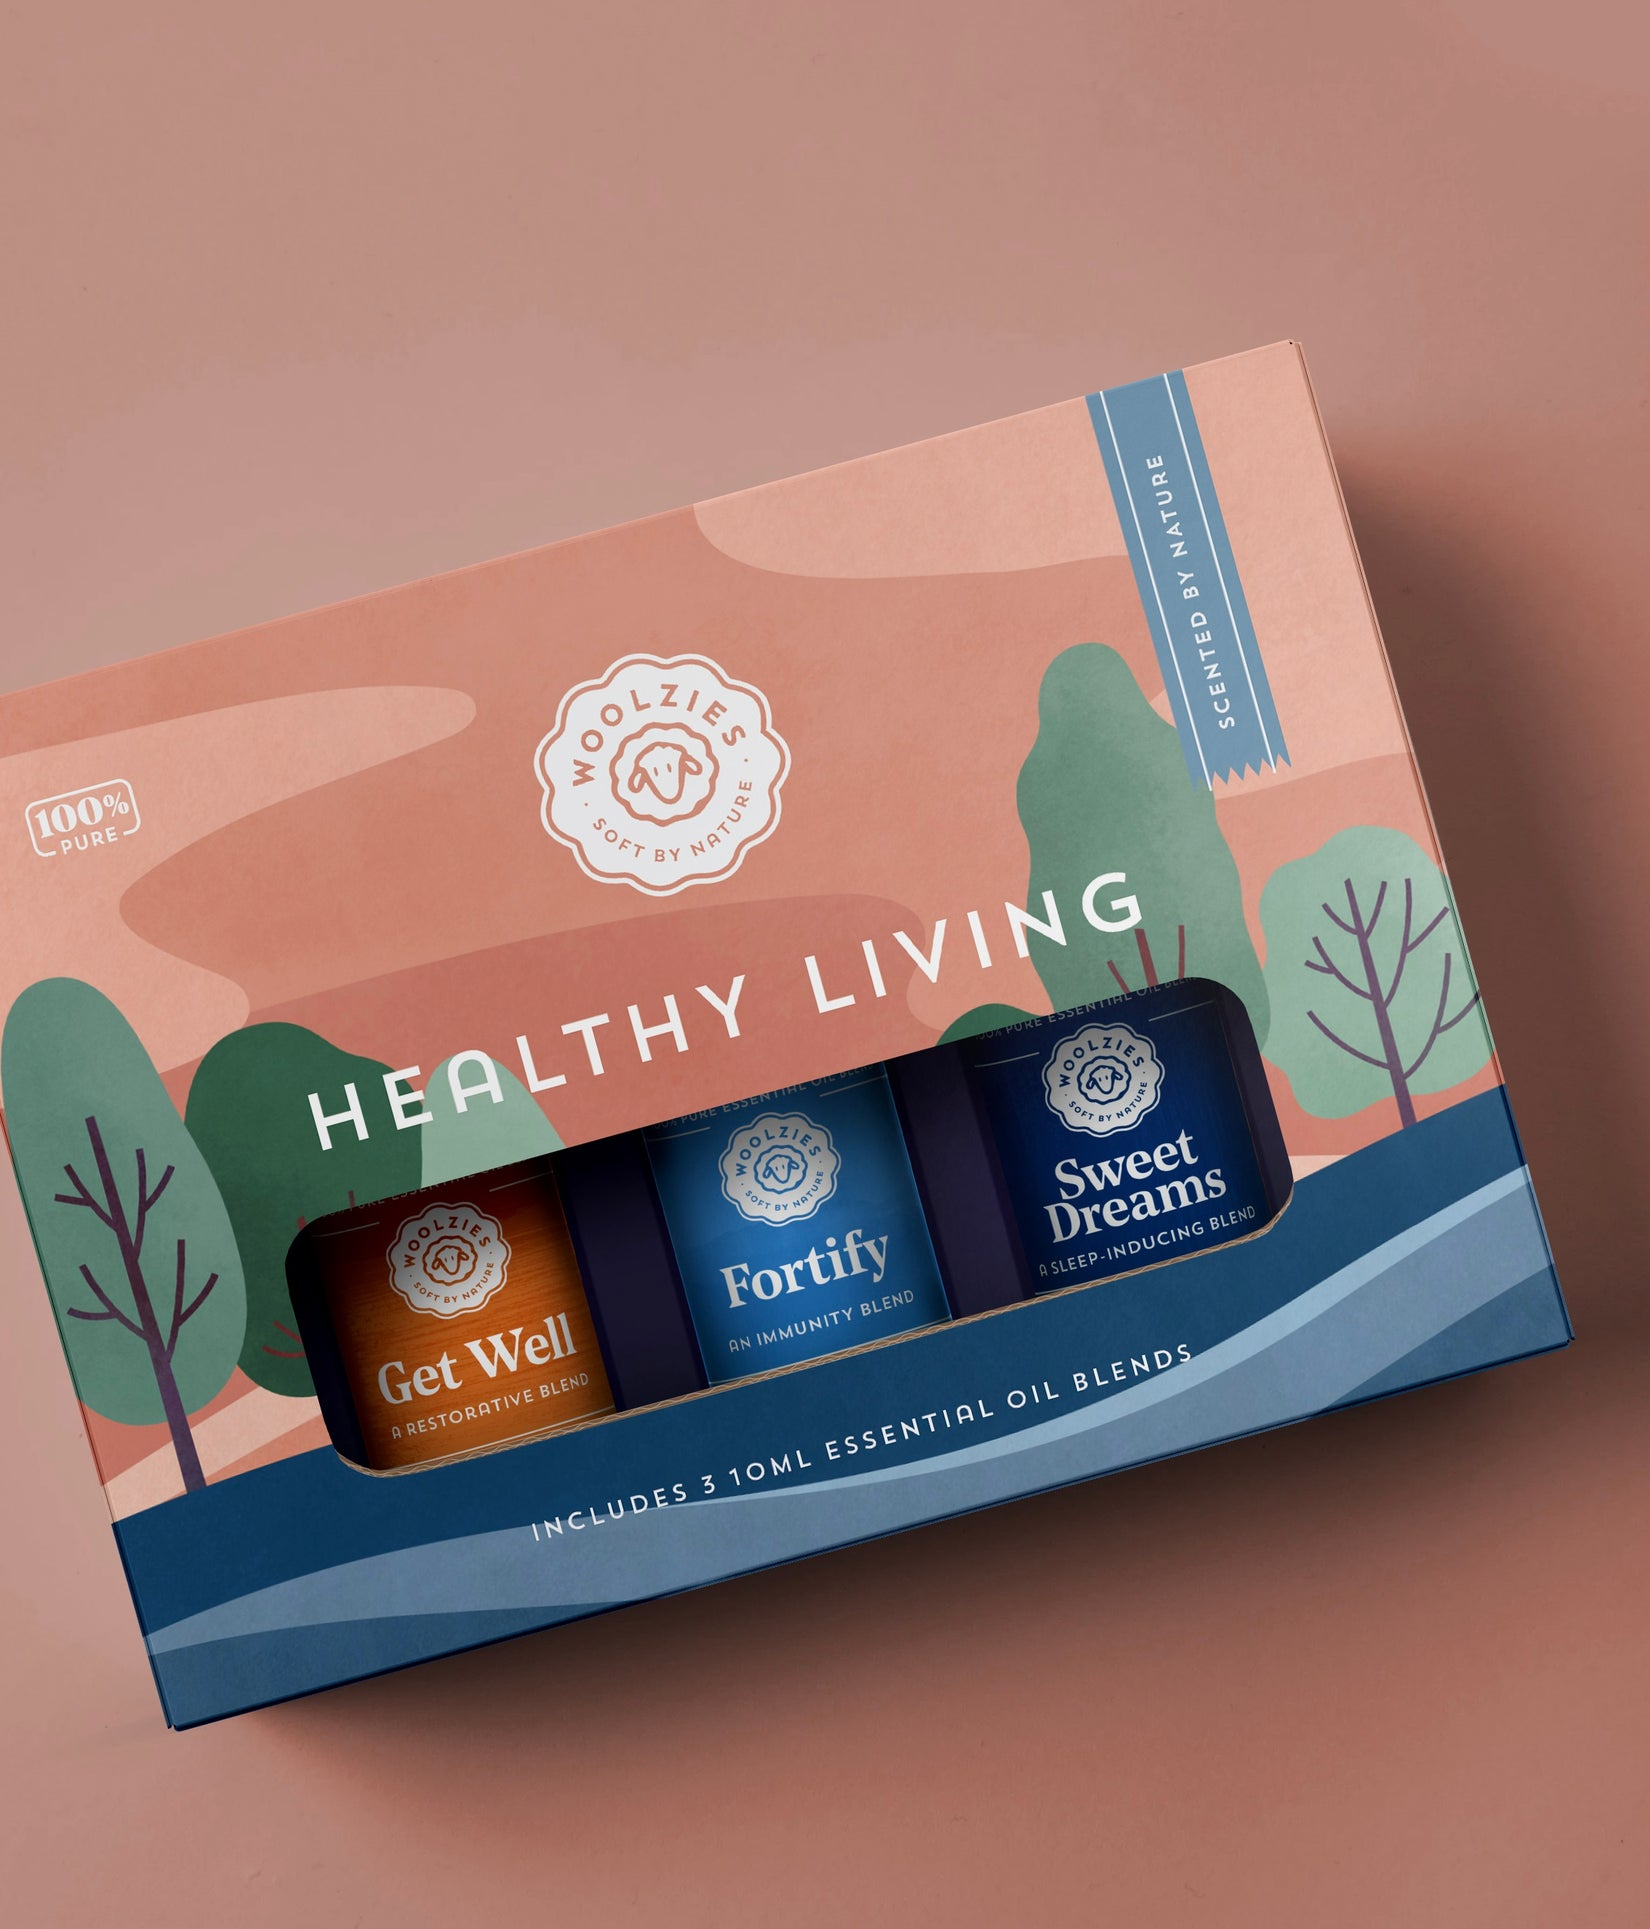 The Healthy Living Collection